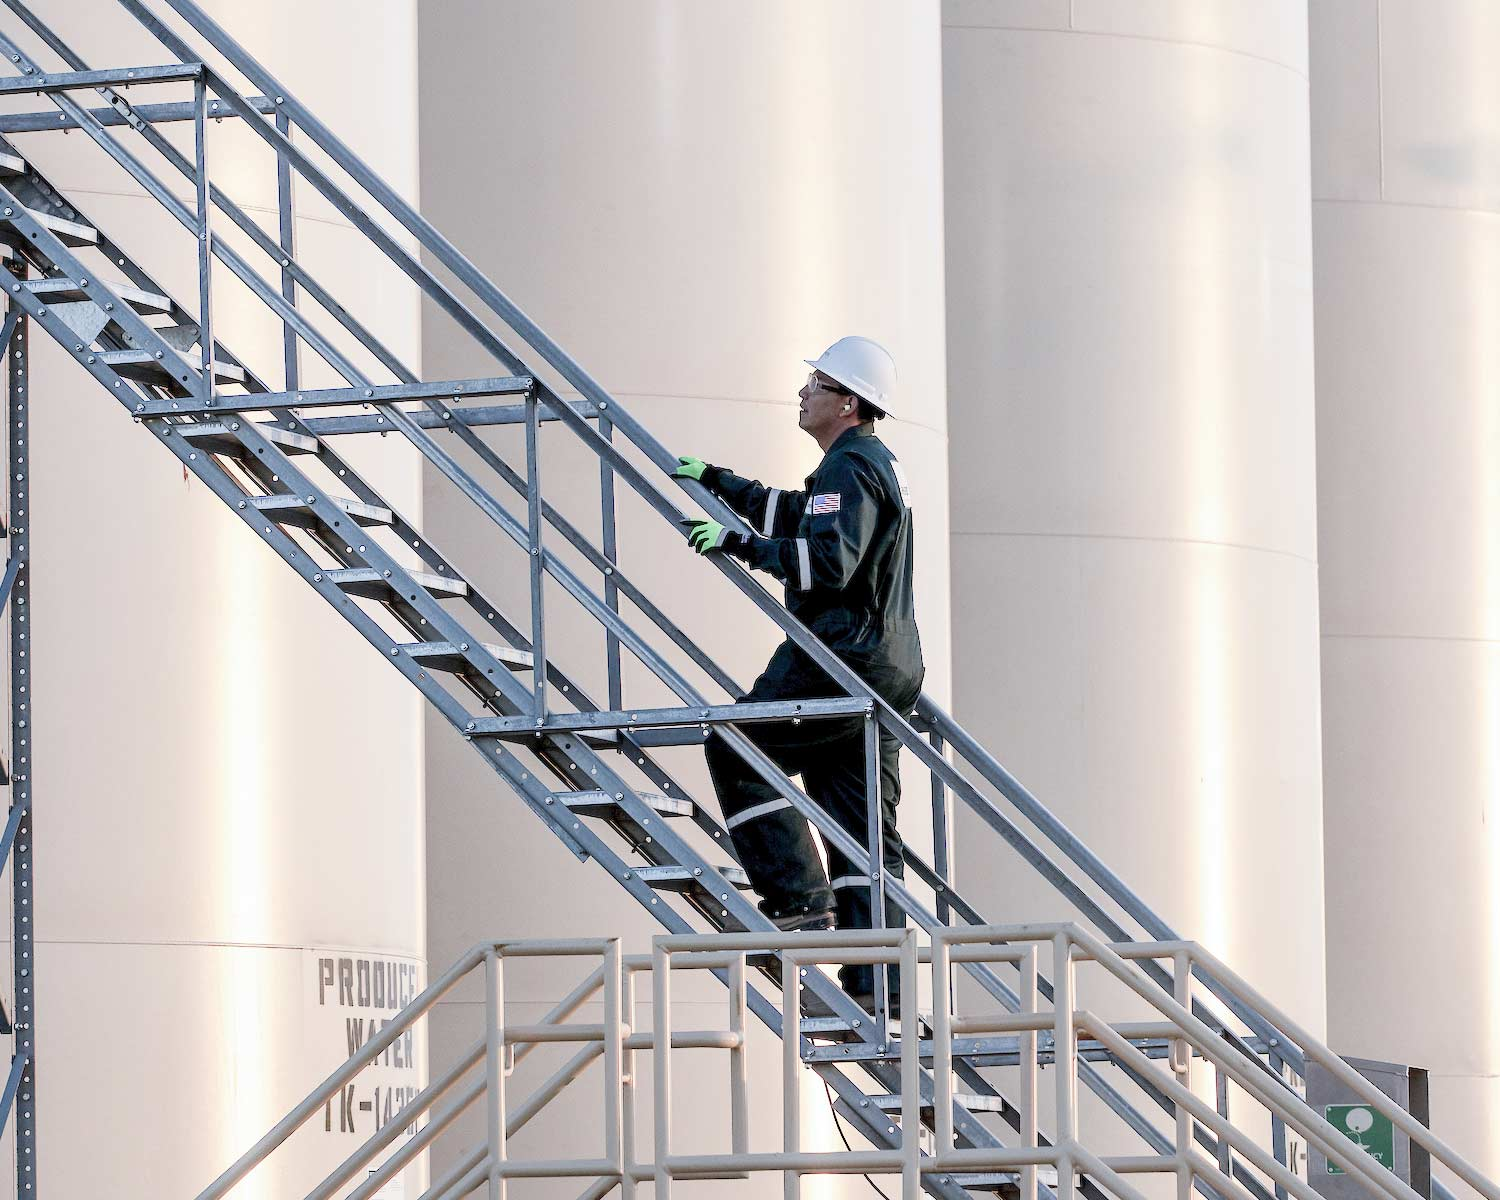 A worker climbs a set of stairs on an industrial worksite, protected by shepherd safety systems gas detection technology